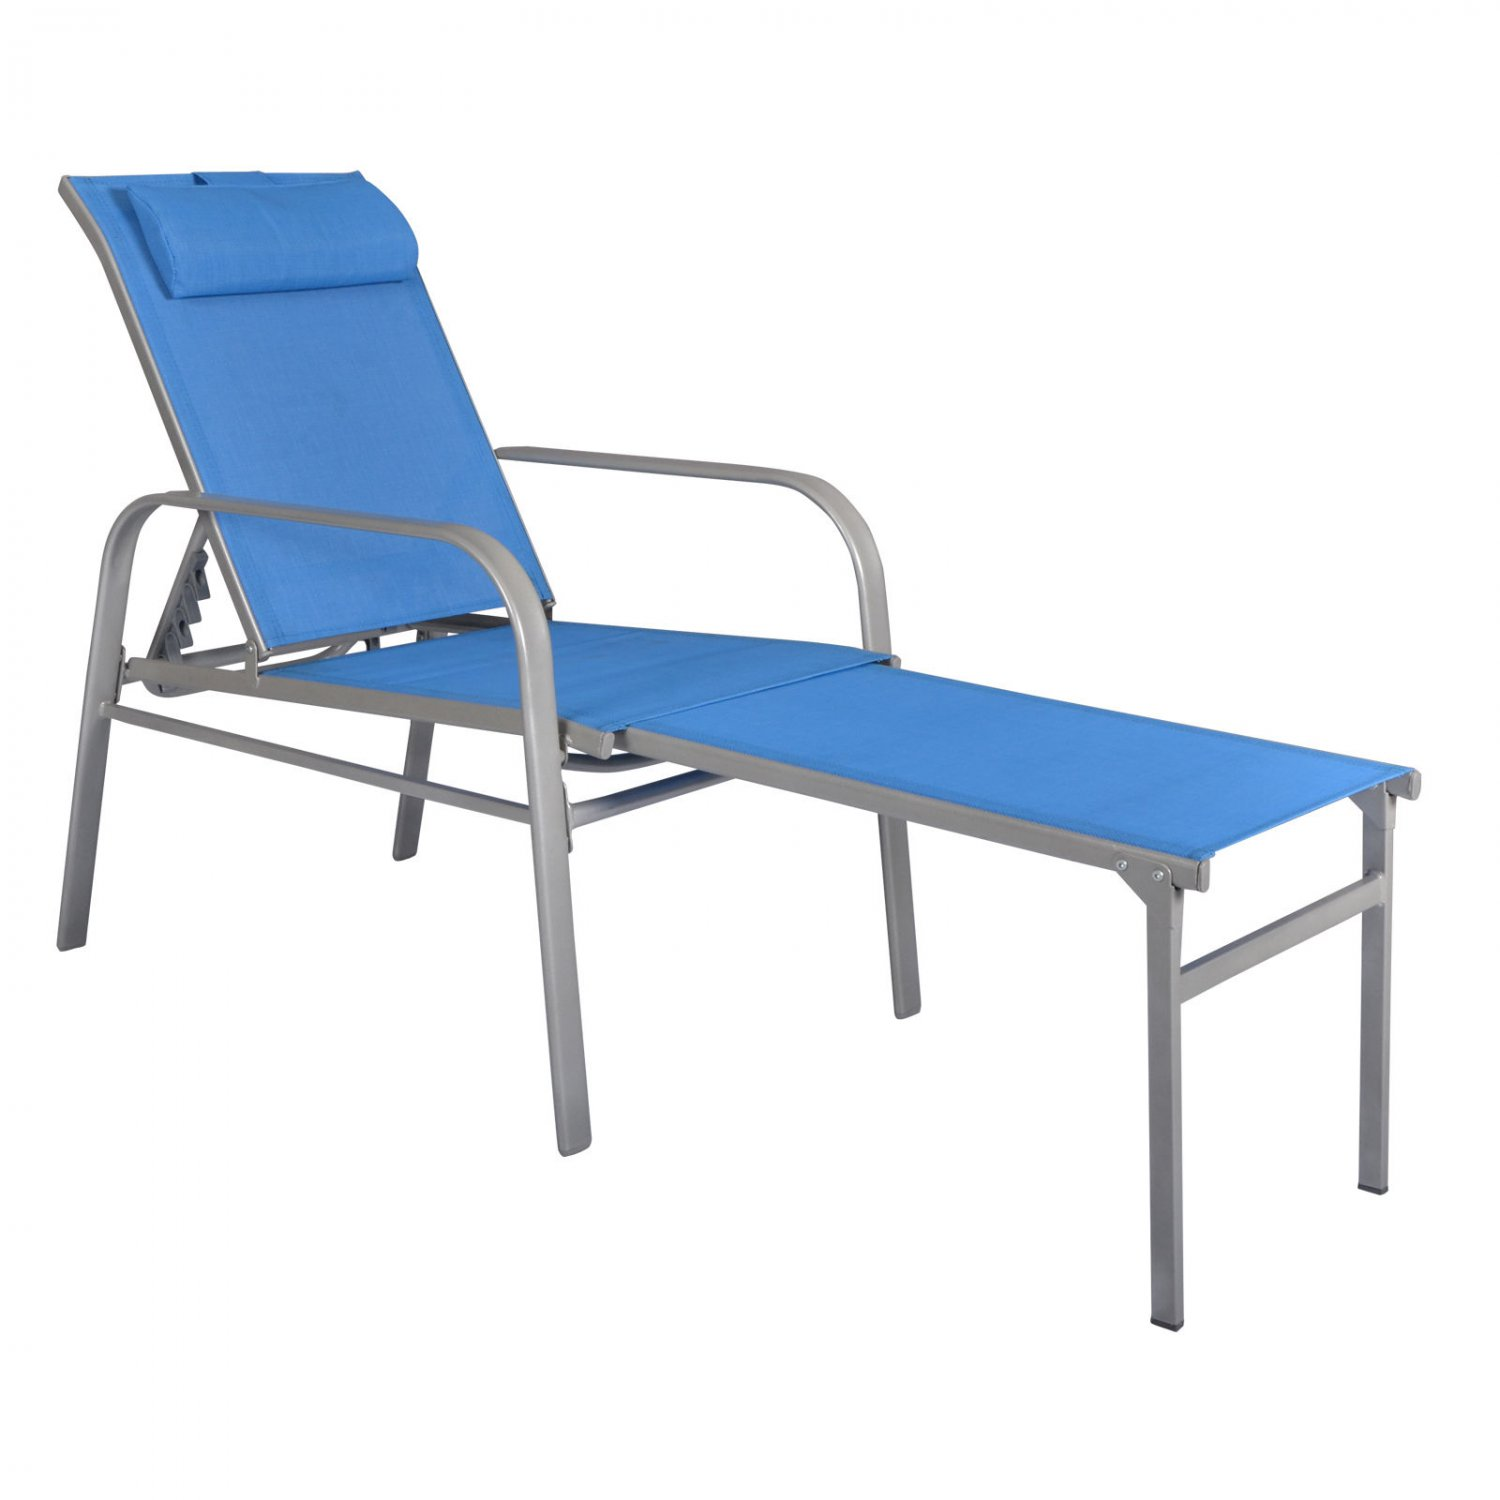 Adjustable pool chaise lounge chair recliner outdoor patio for Adams 5 position chaise lounge white